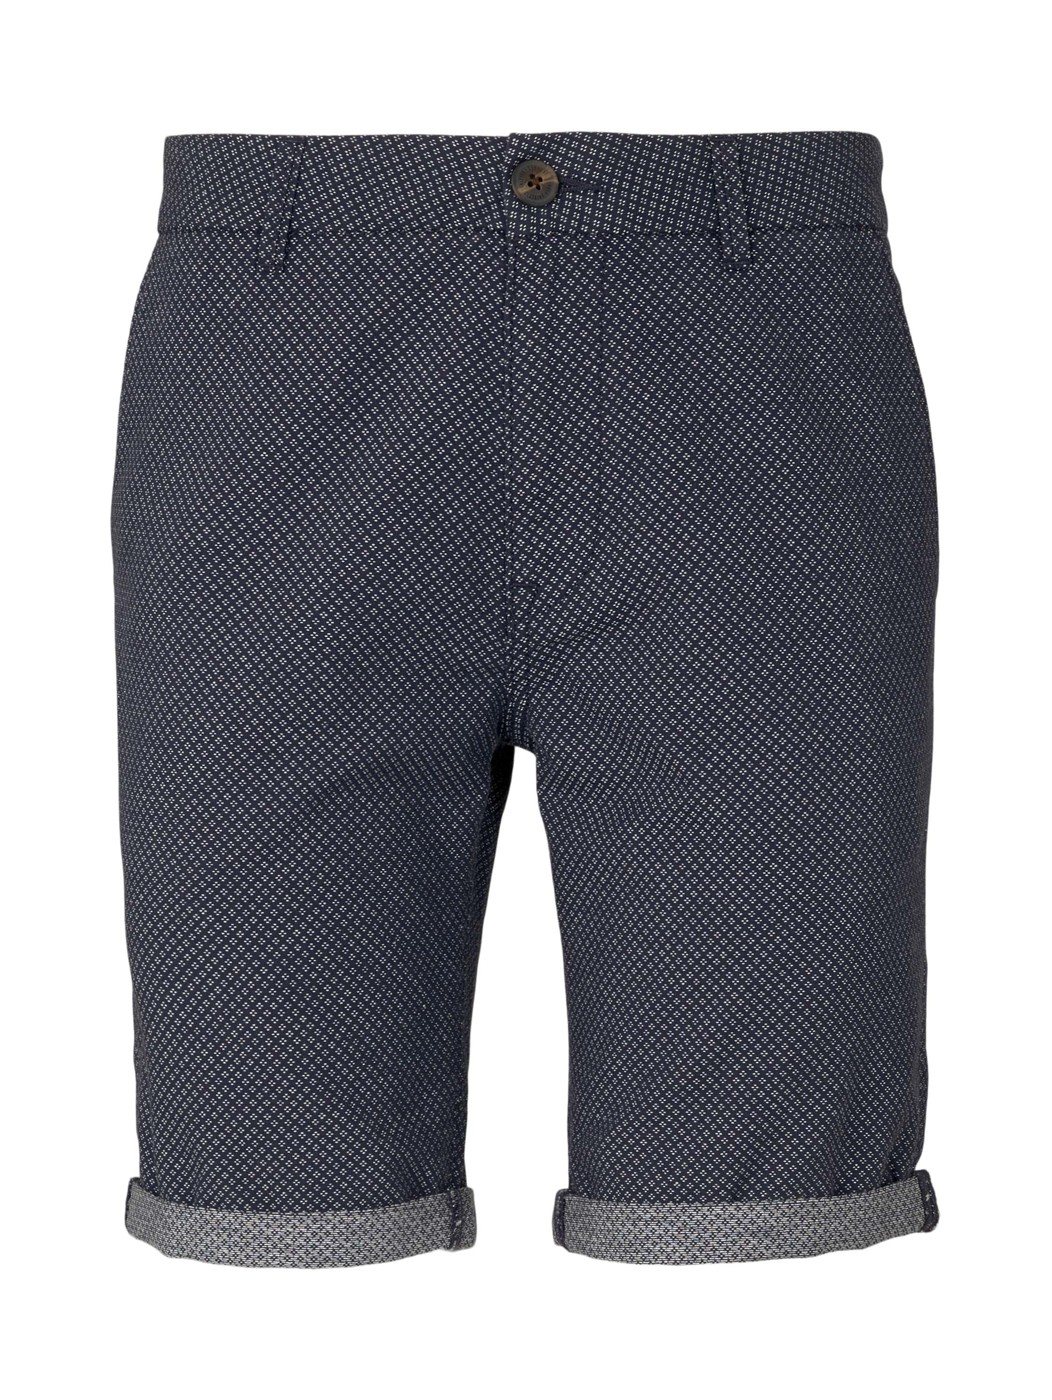 chino shorts yarn dyed - Herren